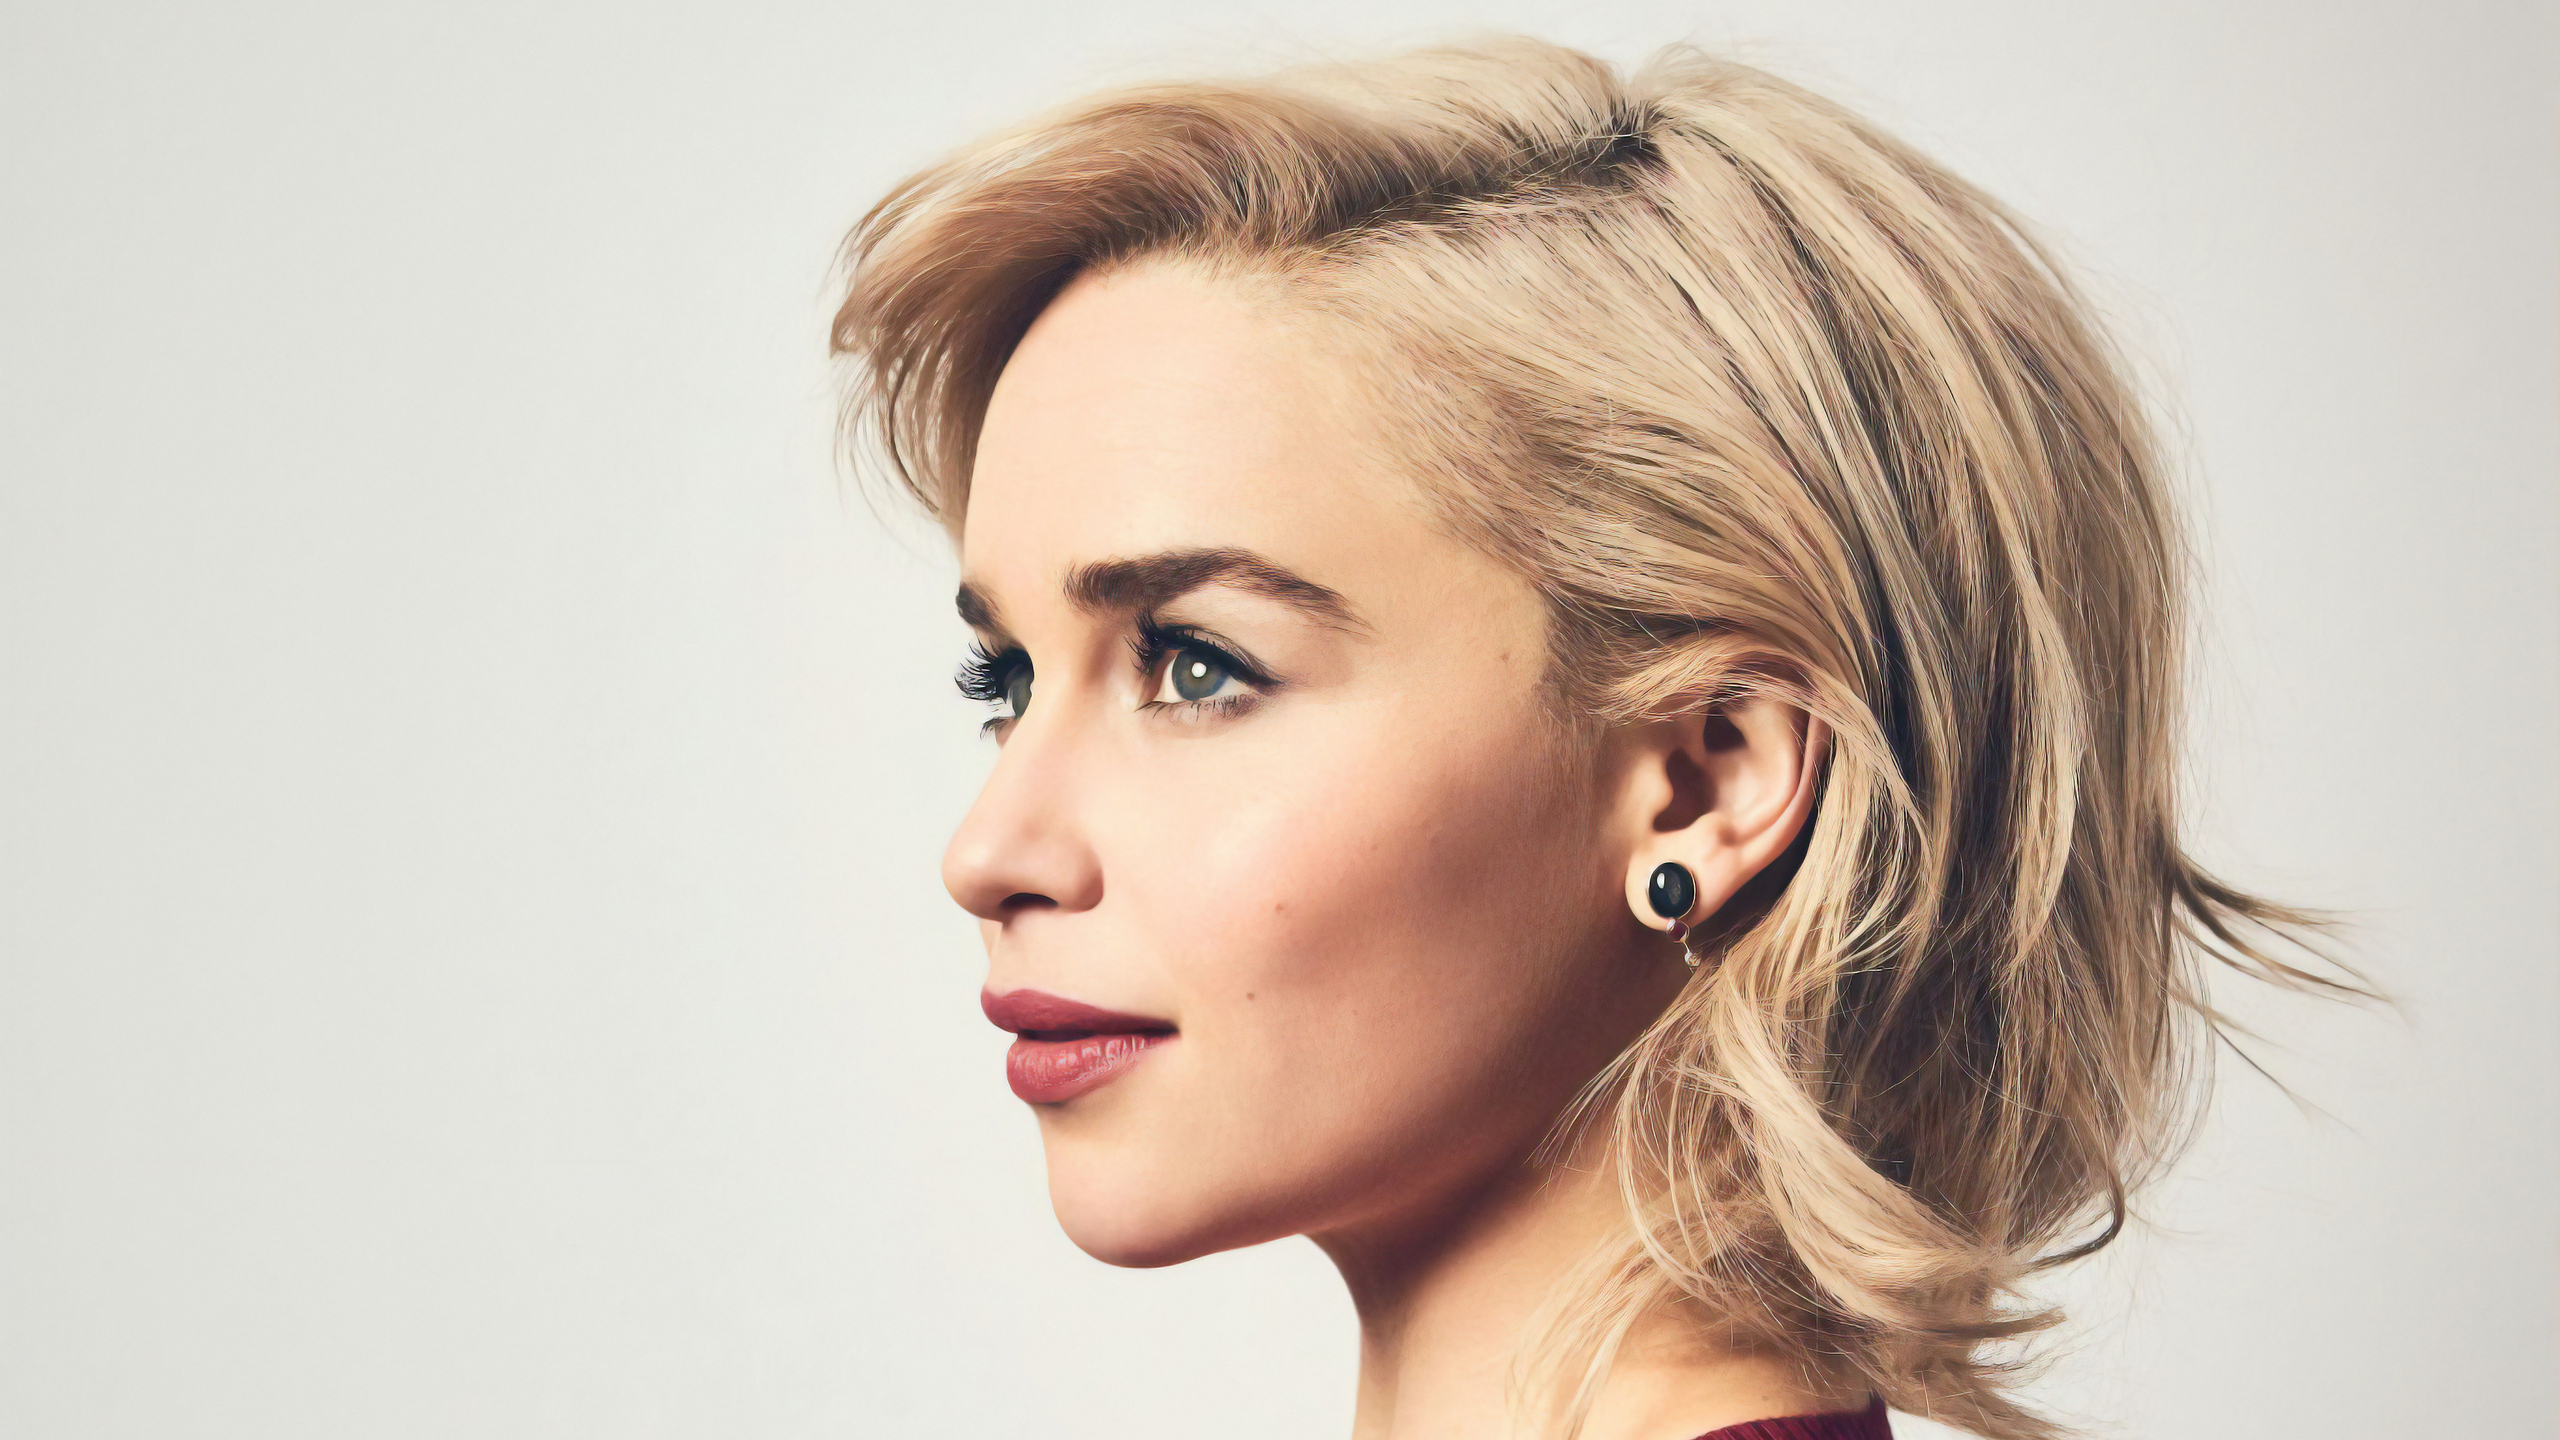 emilia-clarke-psychologies-magazine-photoshoot-m2.jpg